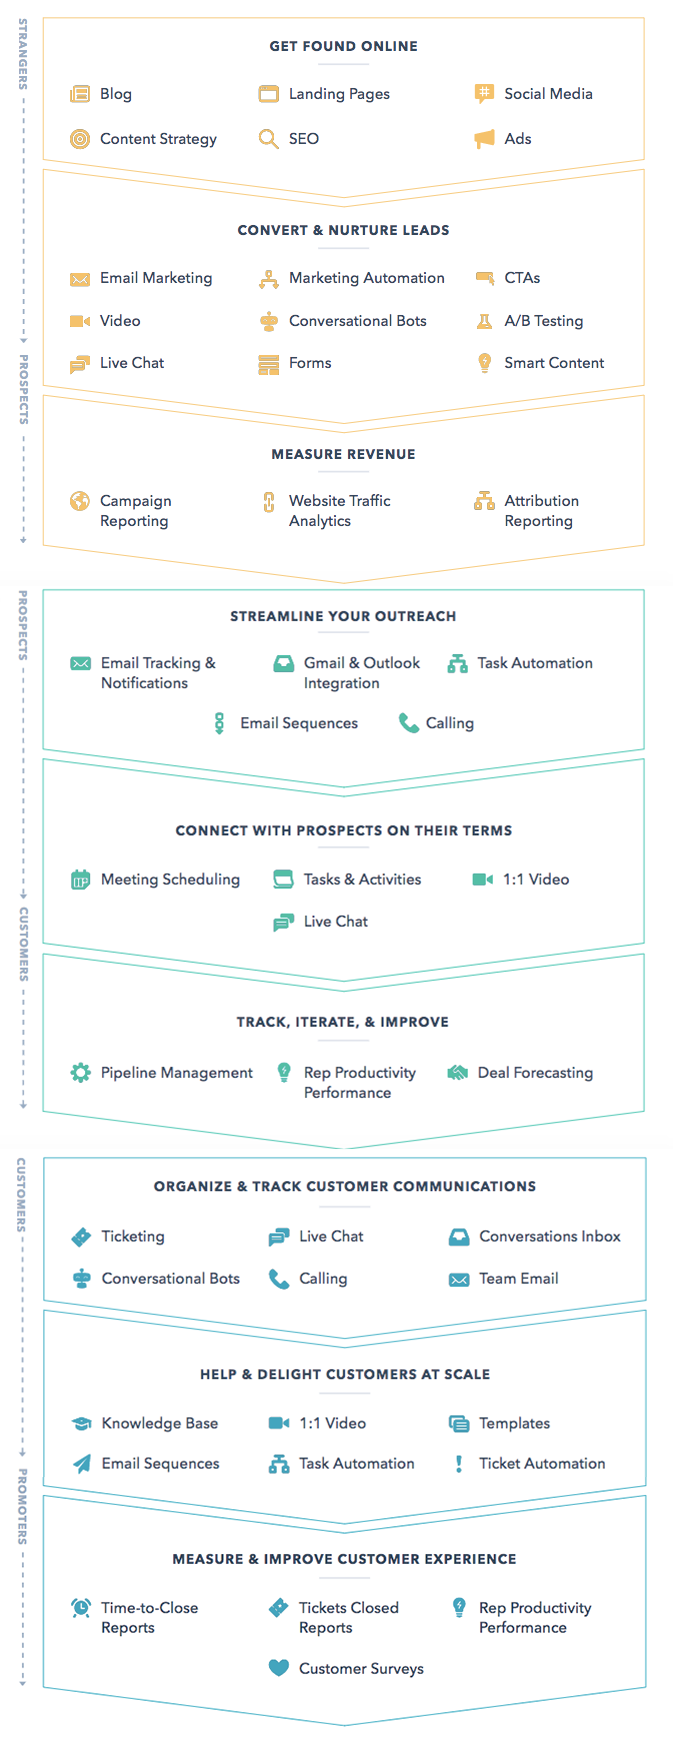 hubspot-tools-stages